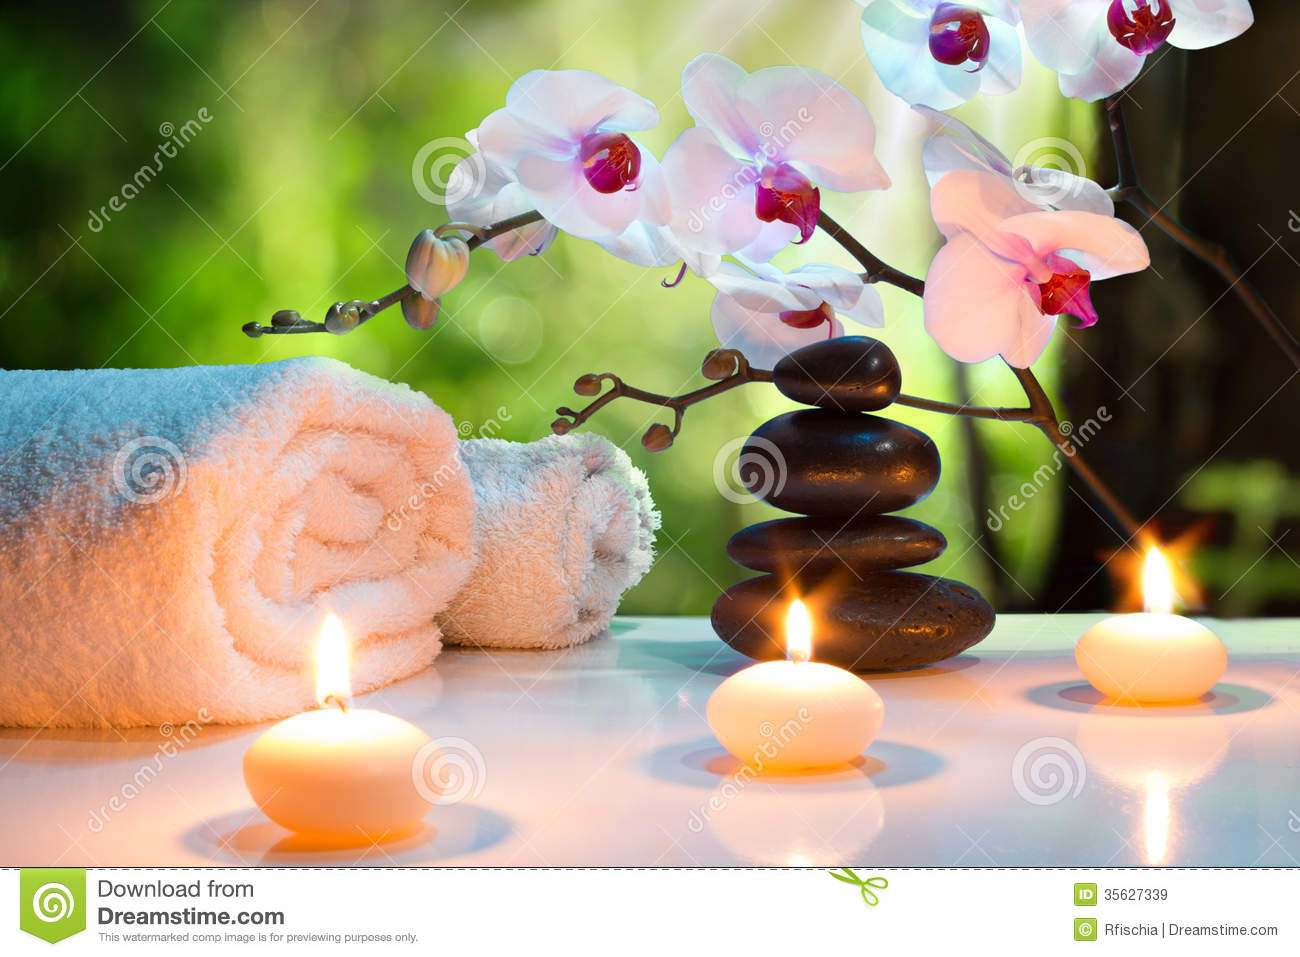 Massage composition spa with candles, orchids and black stones in garden